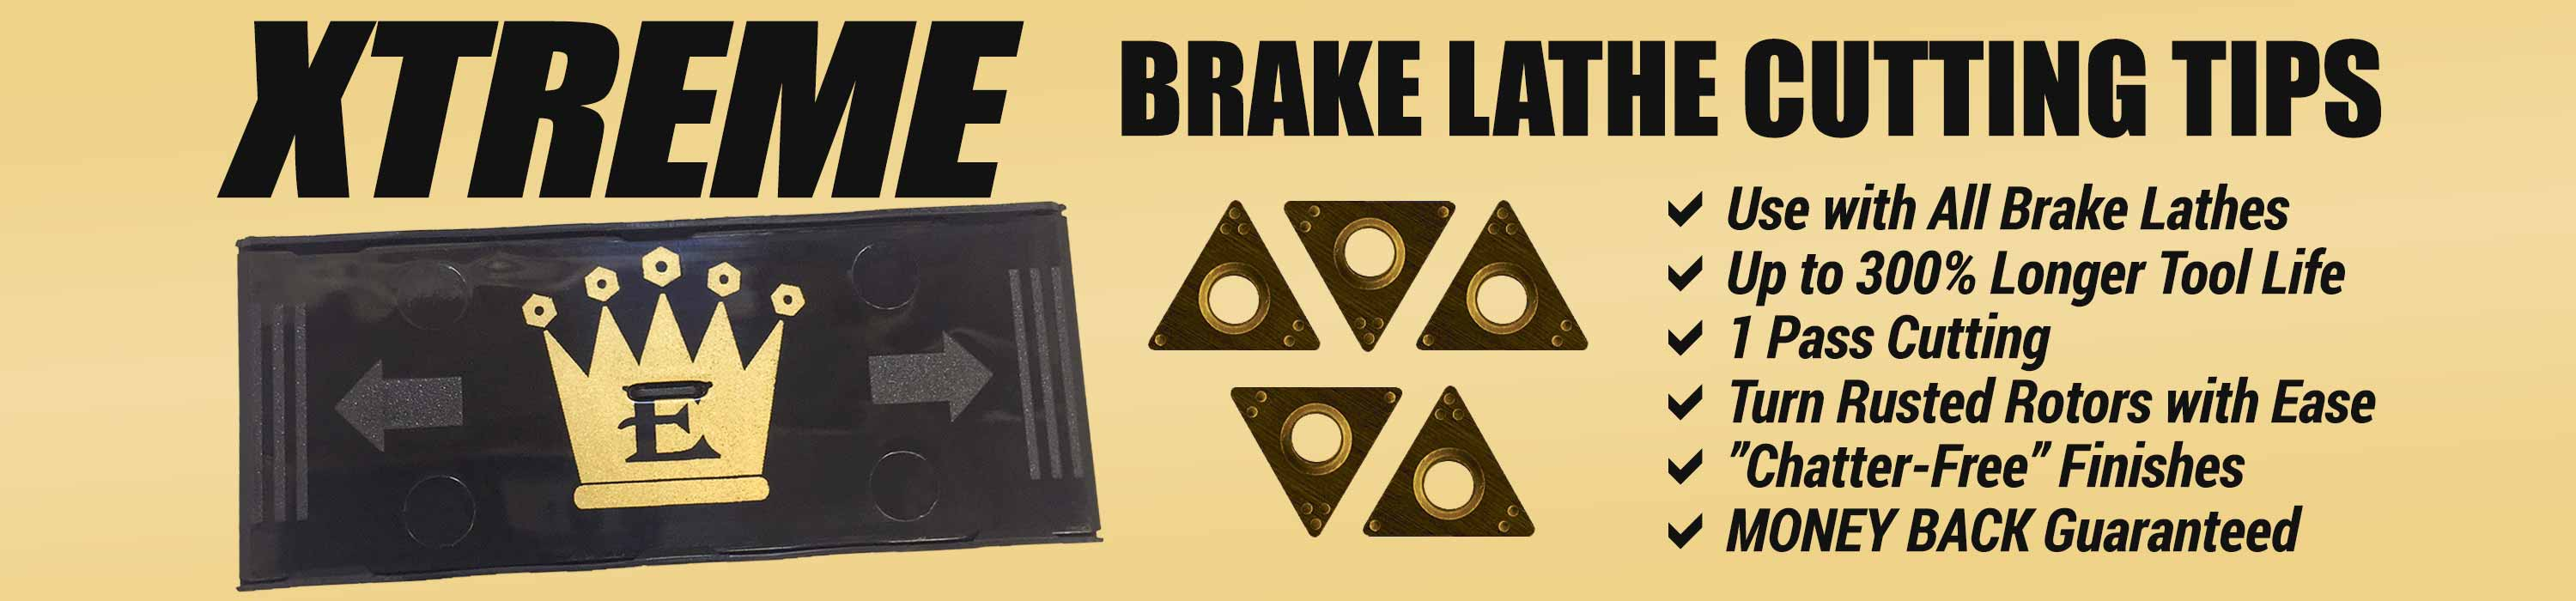 XTREME Brake Lathe Cutting Tips - Only at Eisenking